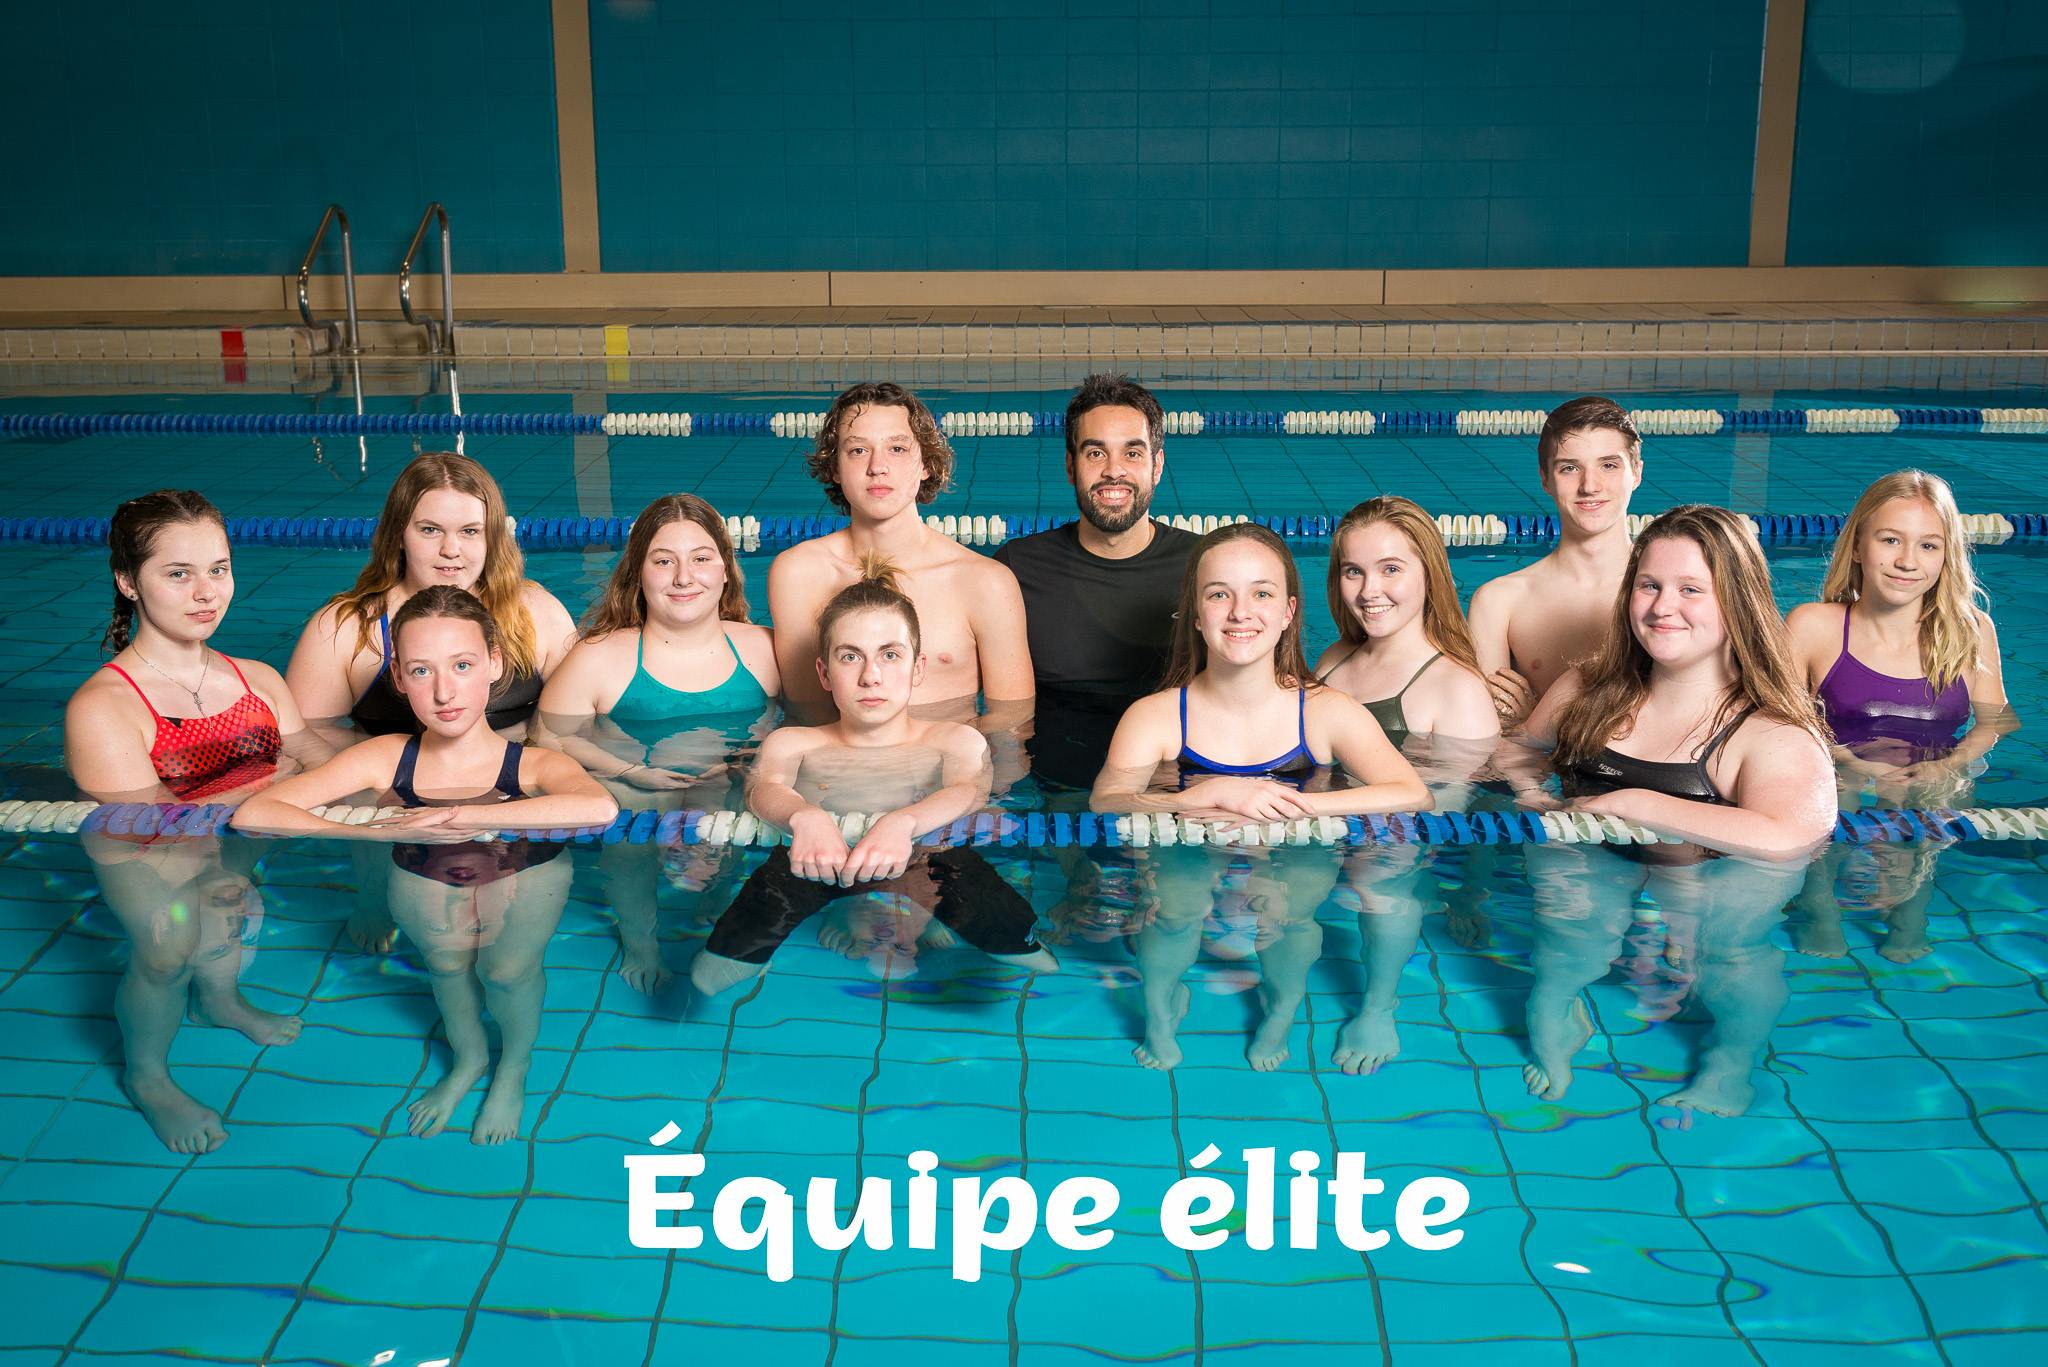 groupe_elite